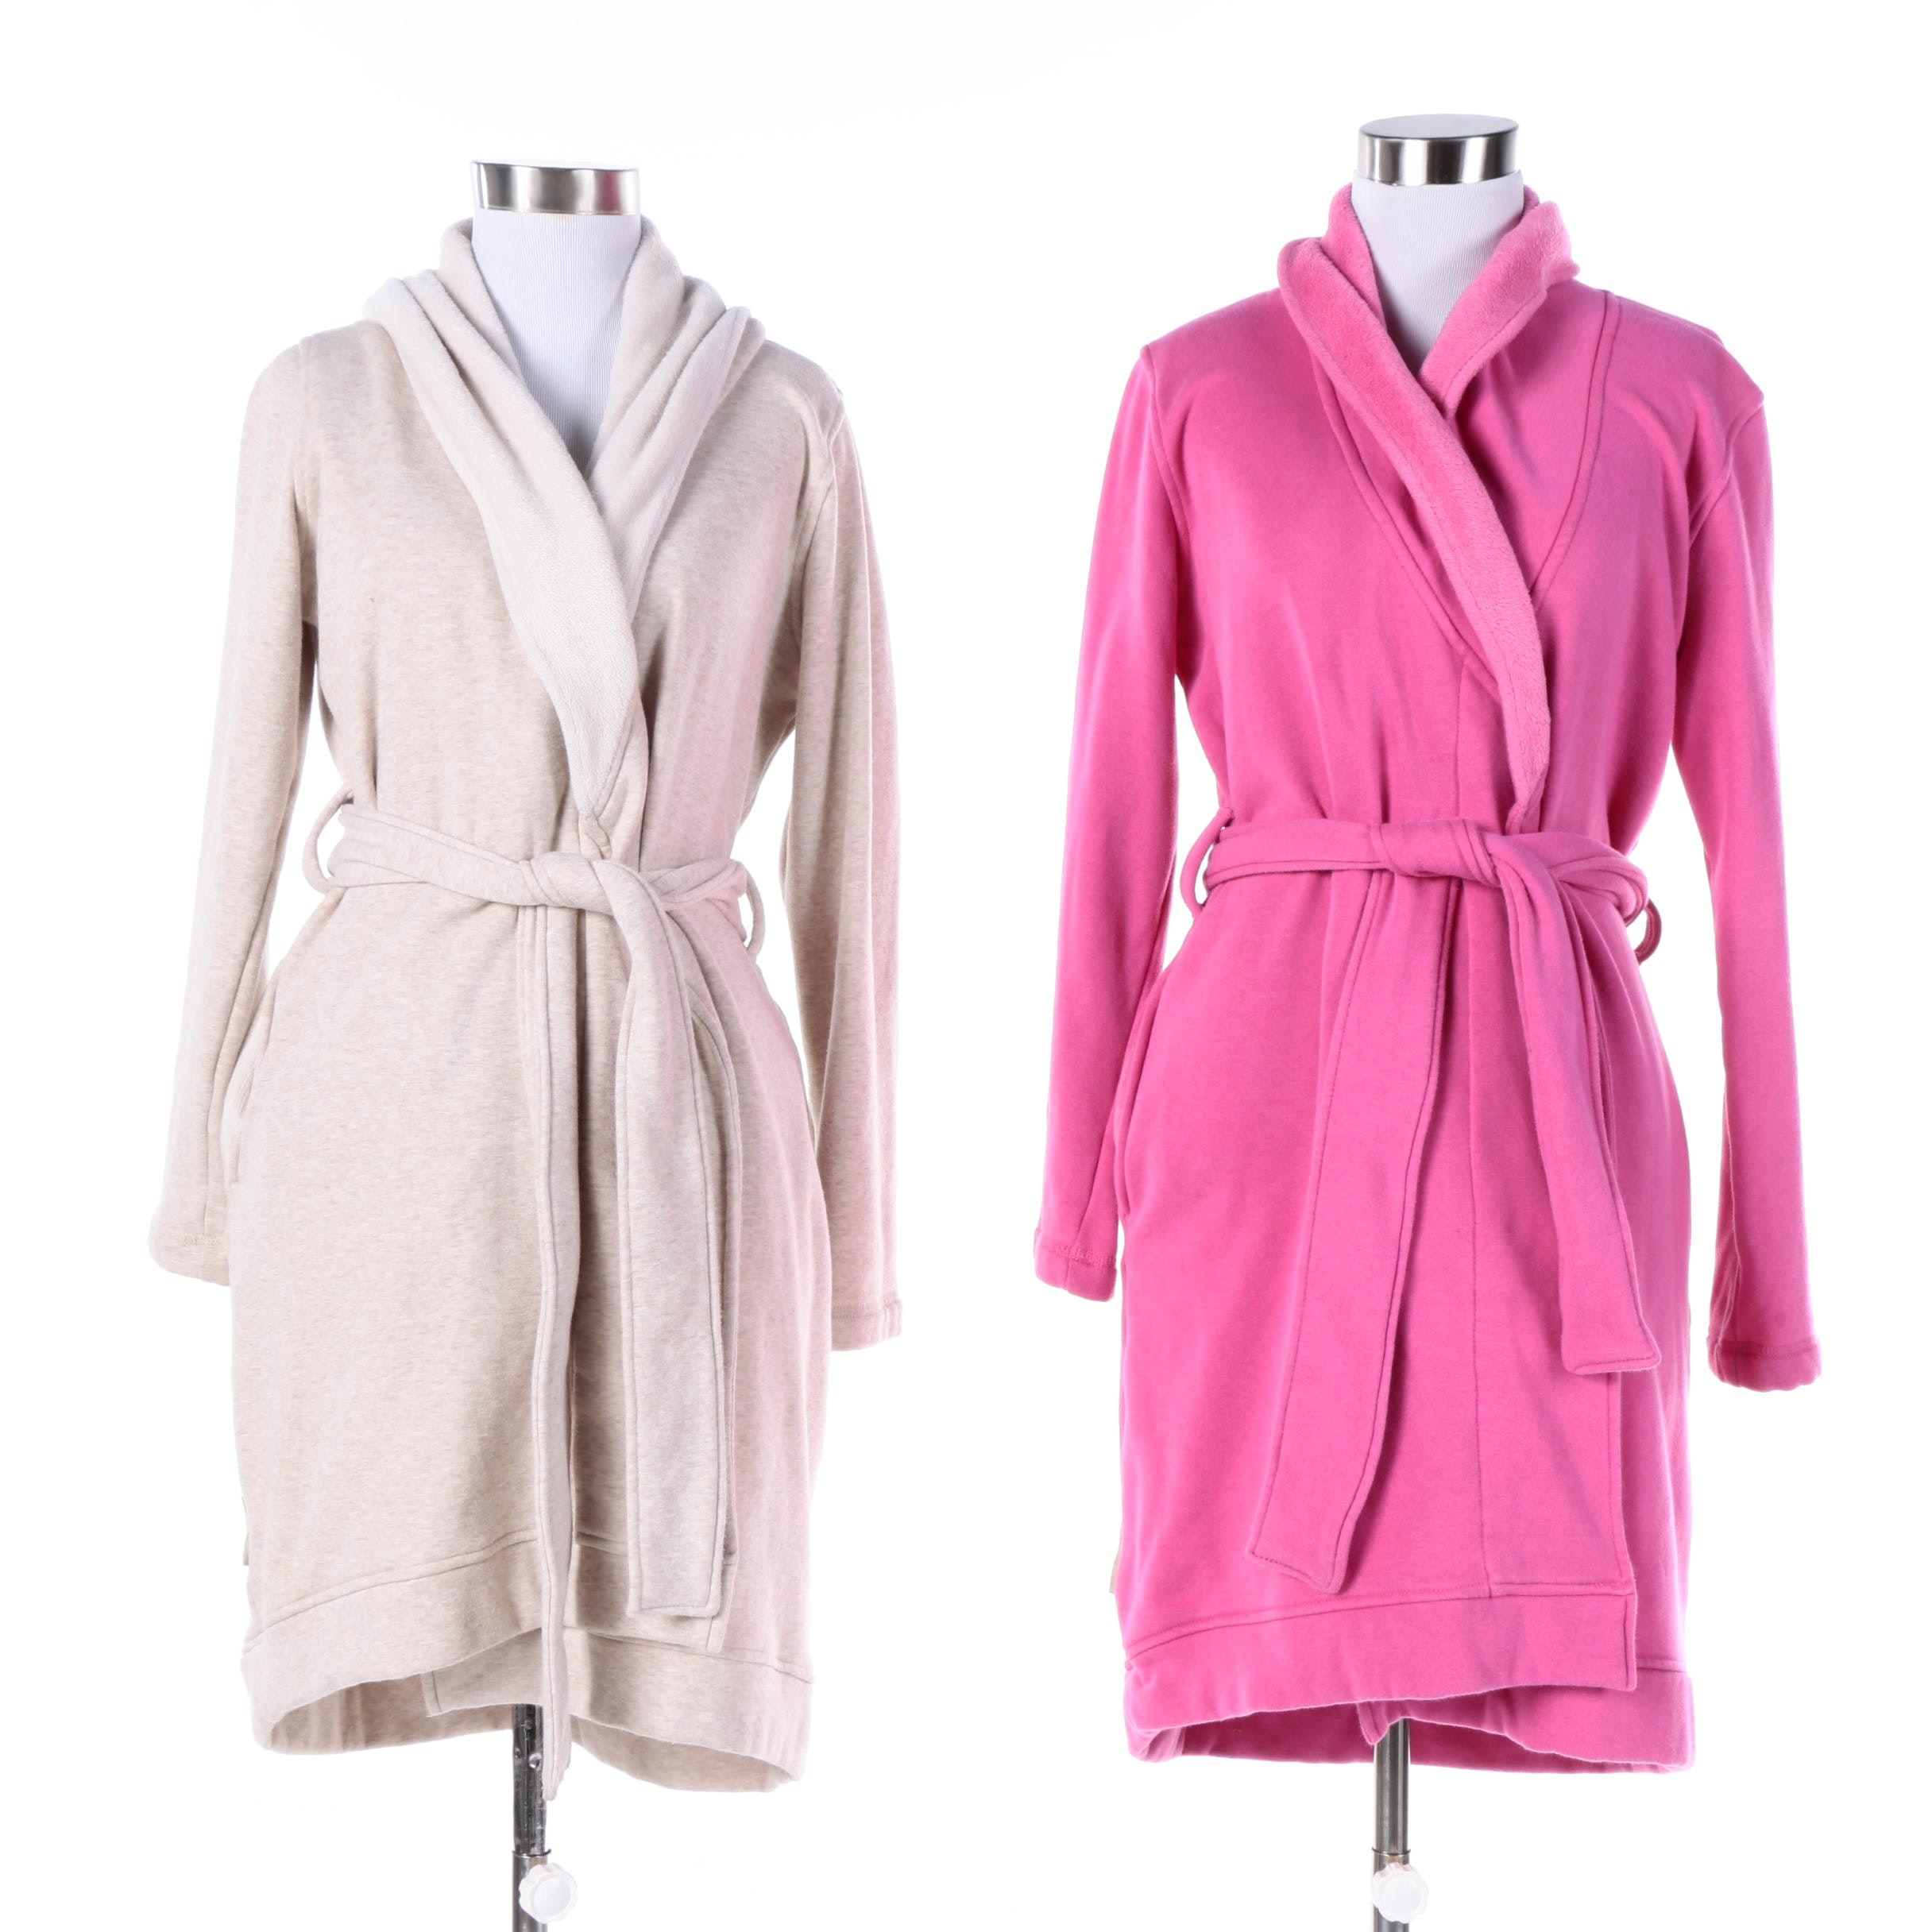 Women's Ugg Australia Beige and Pink Robes